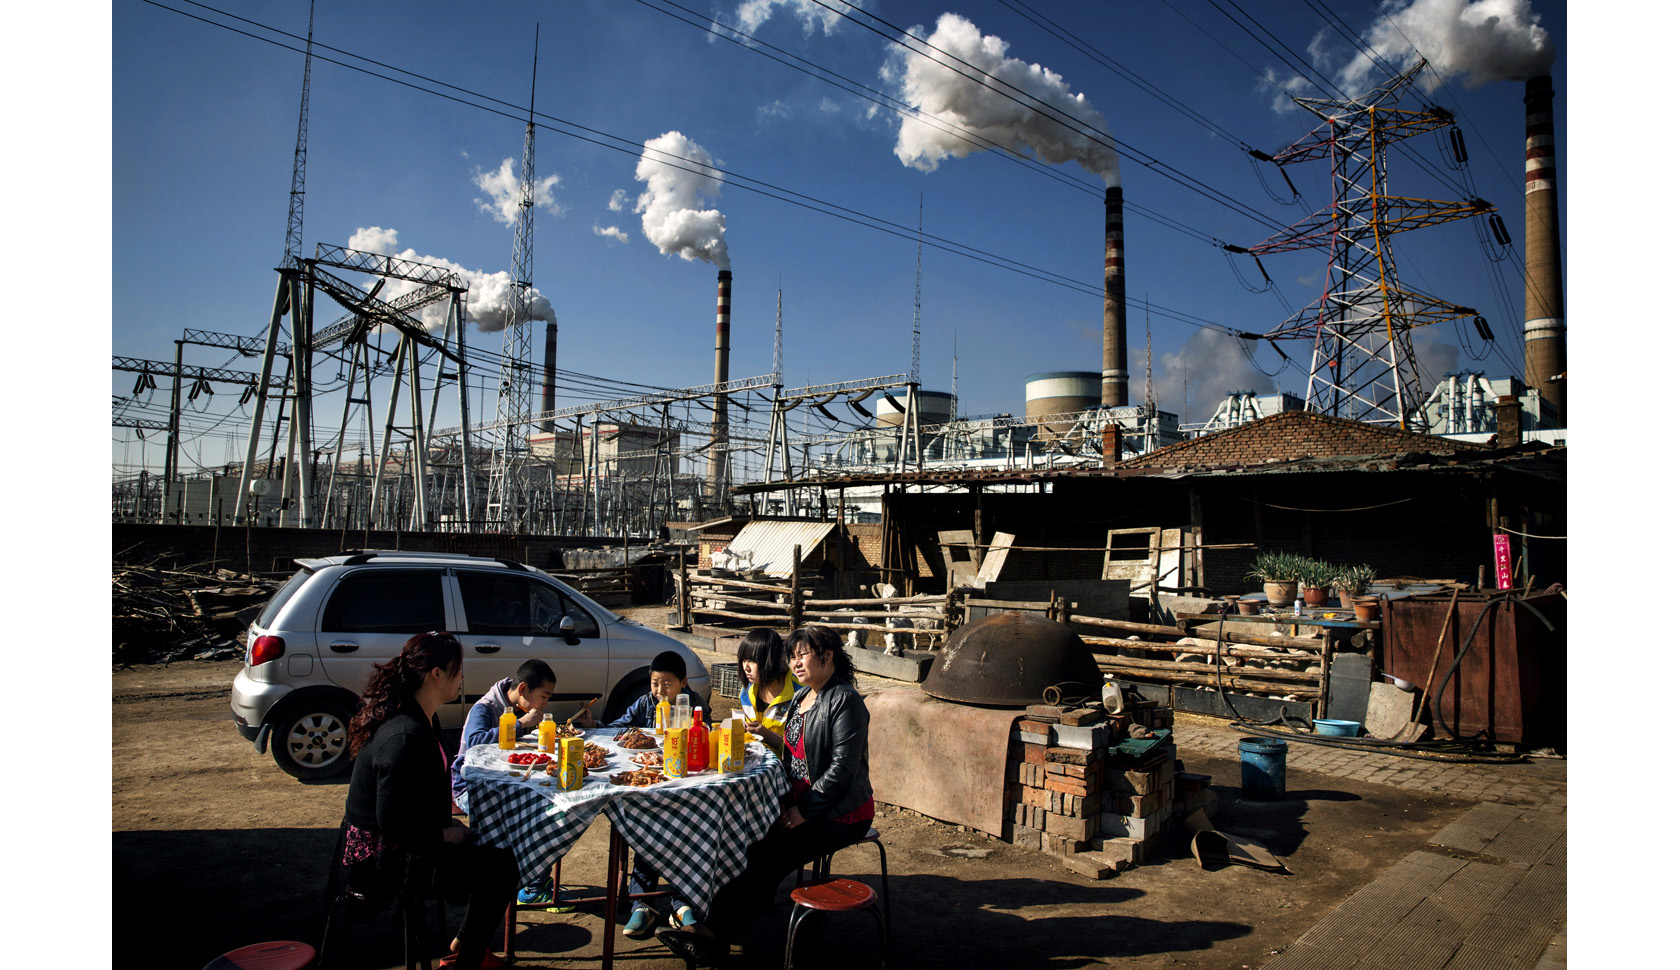 family eating near Datong No. 2 coal-fired power plant